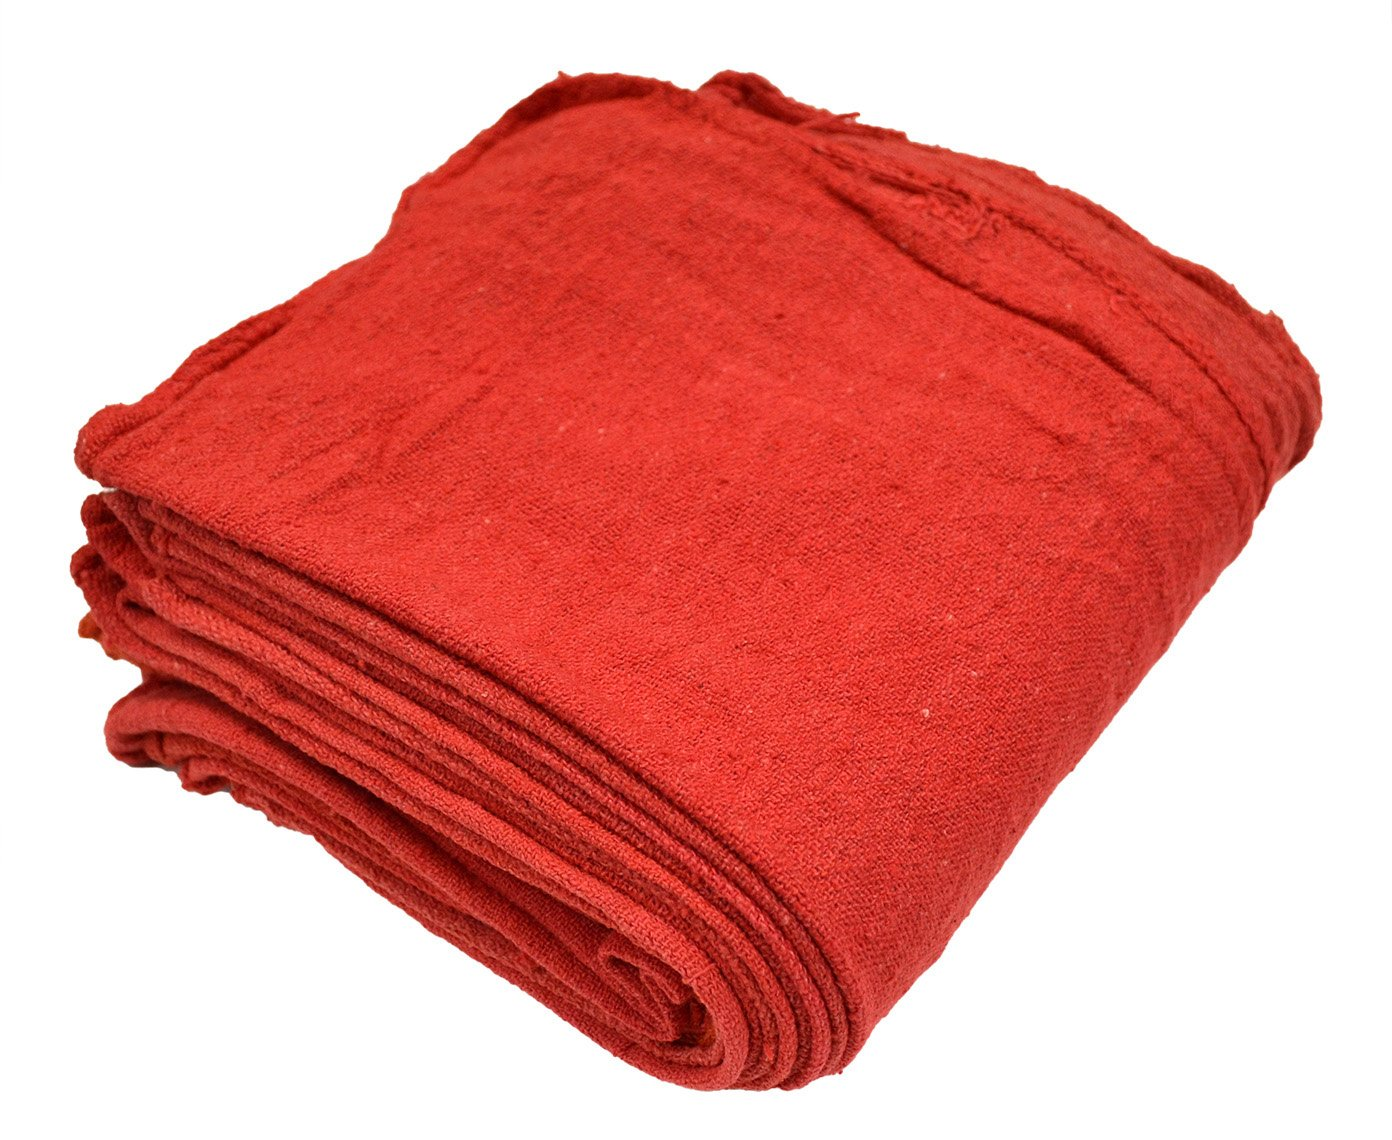 Pro-Clean Basics A21820 Shop Towels, Red (Pack of 500)